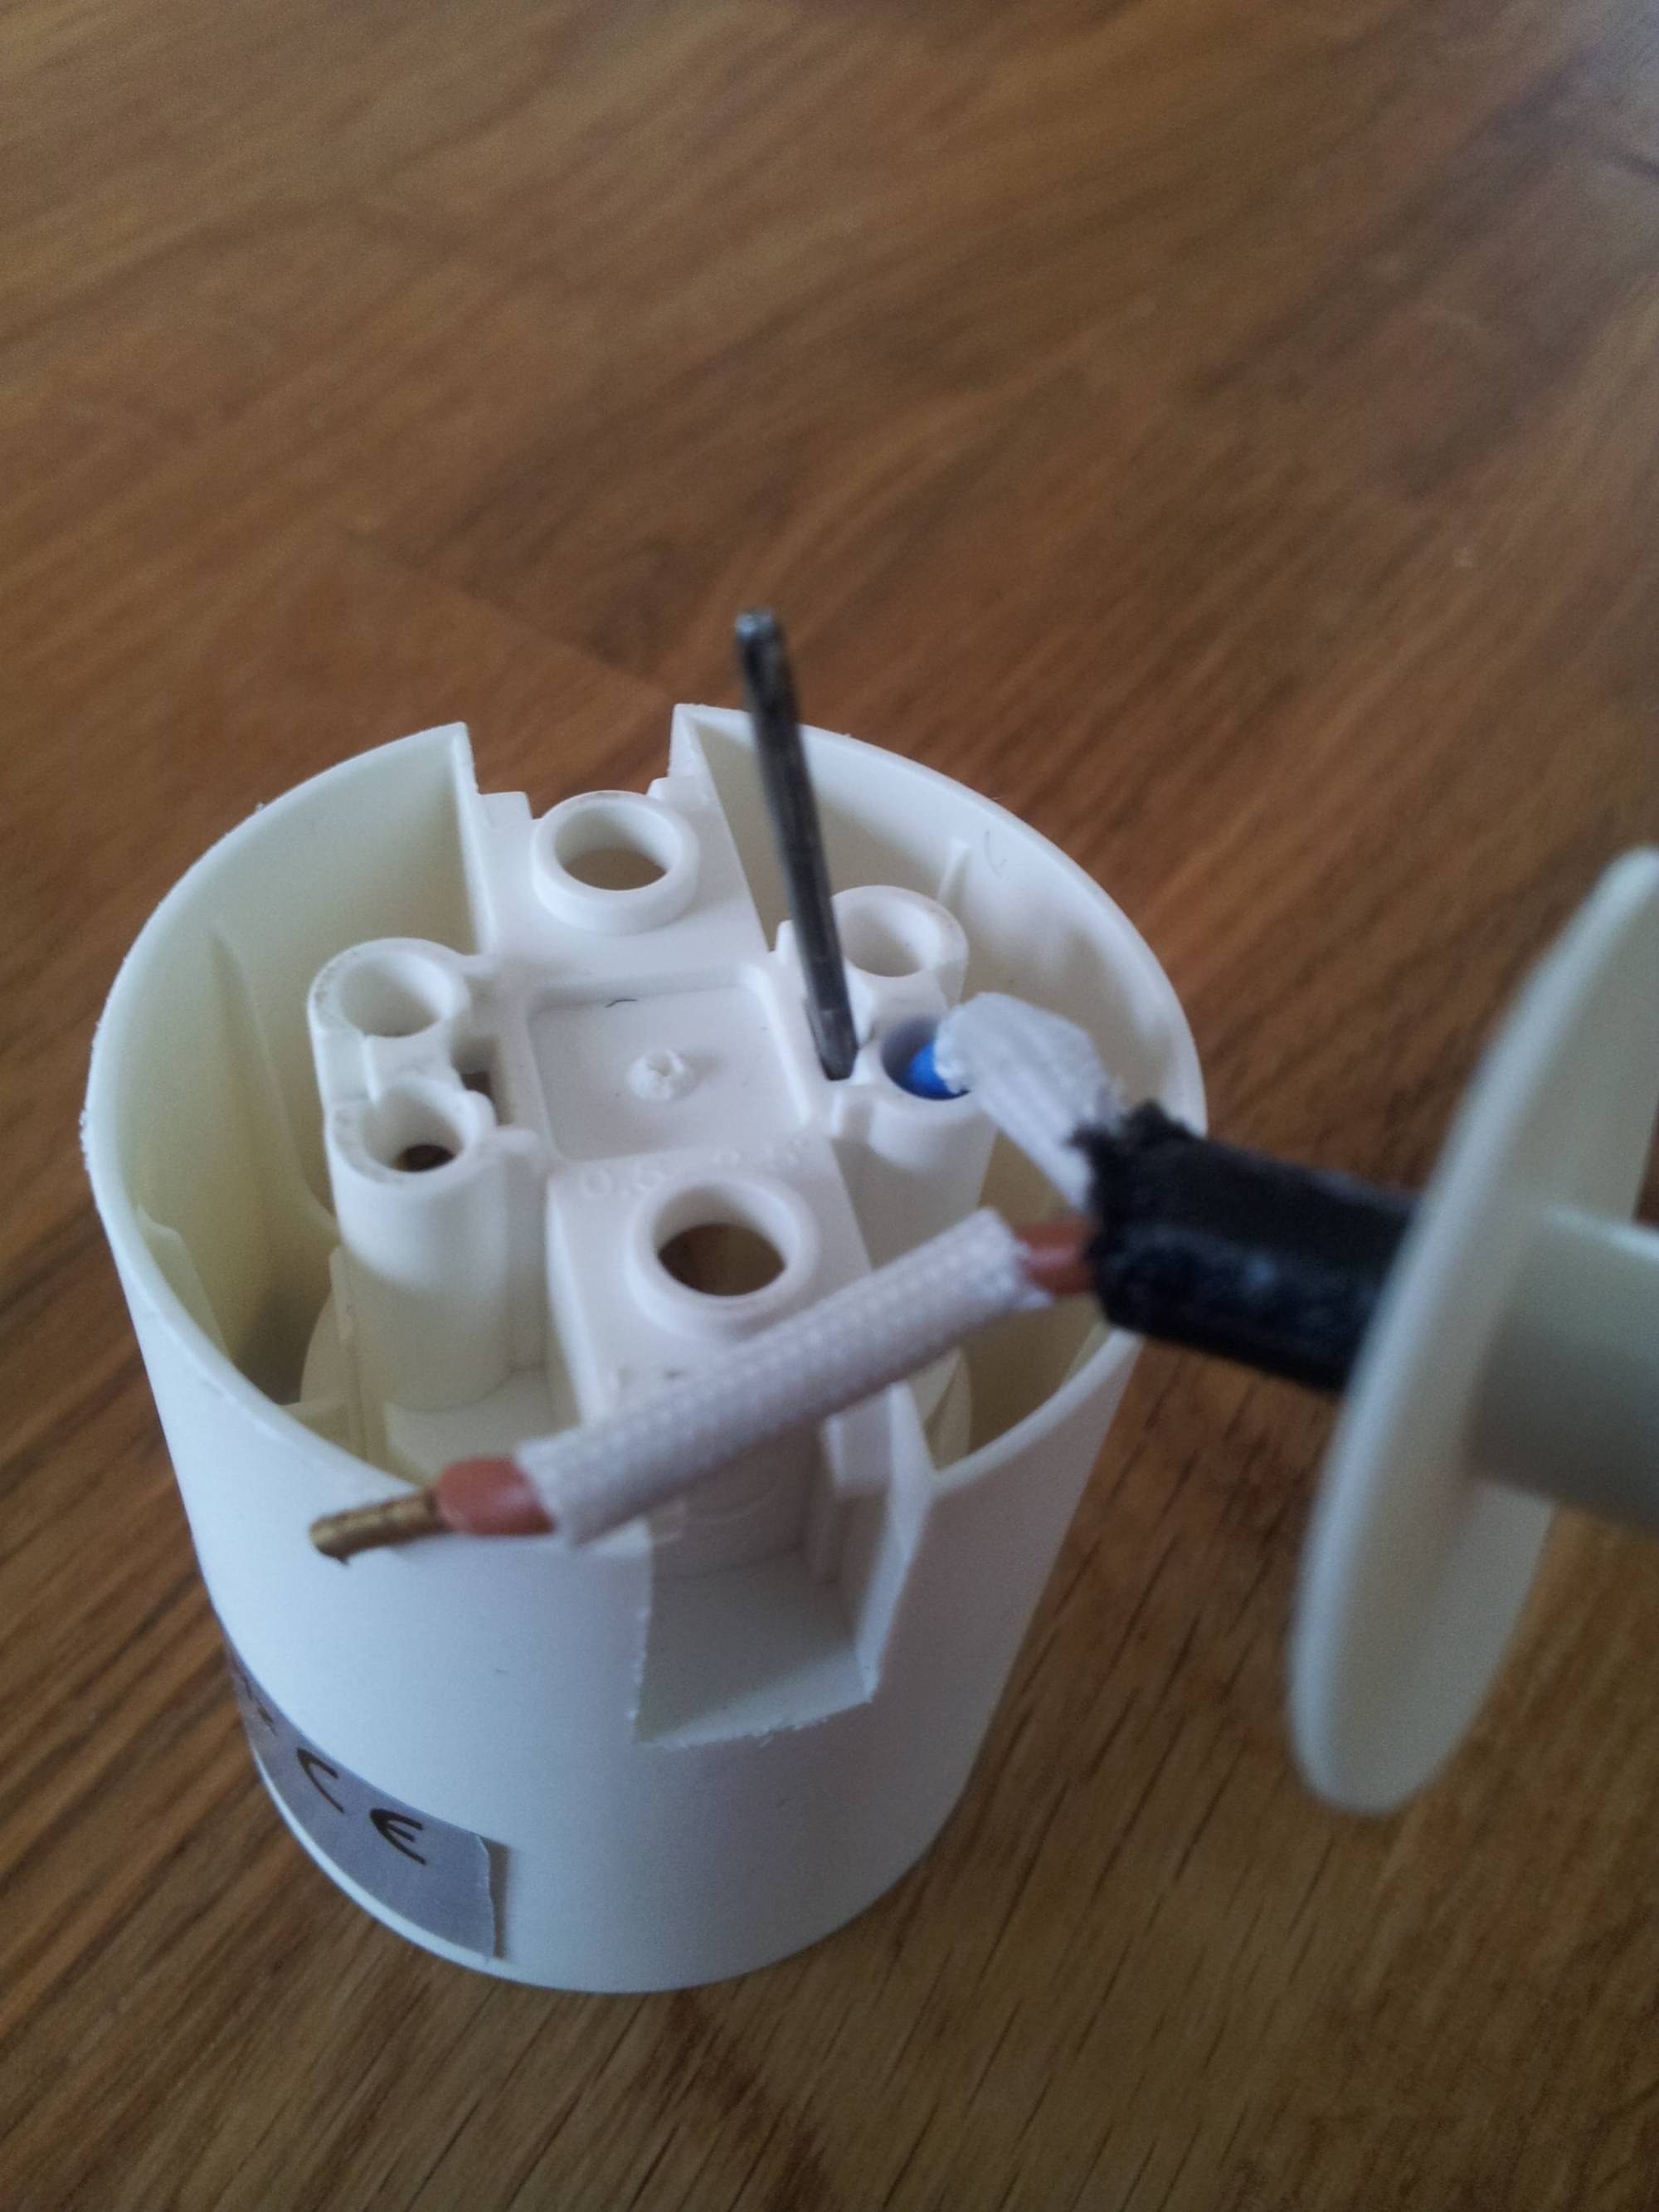 hight resolution of wiring how can i remove the wires from this lamp holder home wiring a 3 way bulb socket wiring a light socket